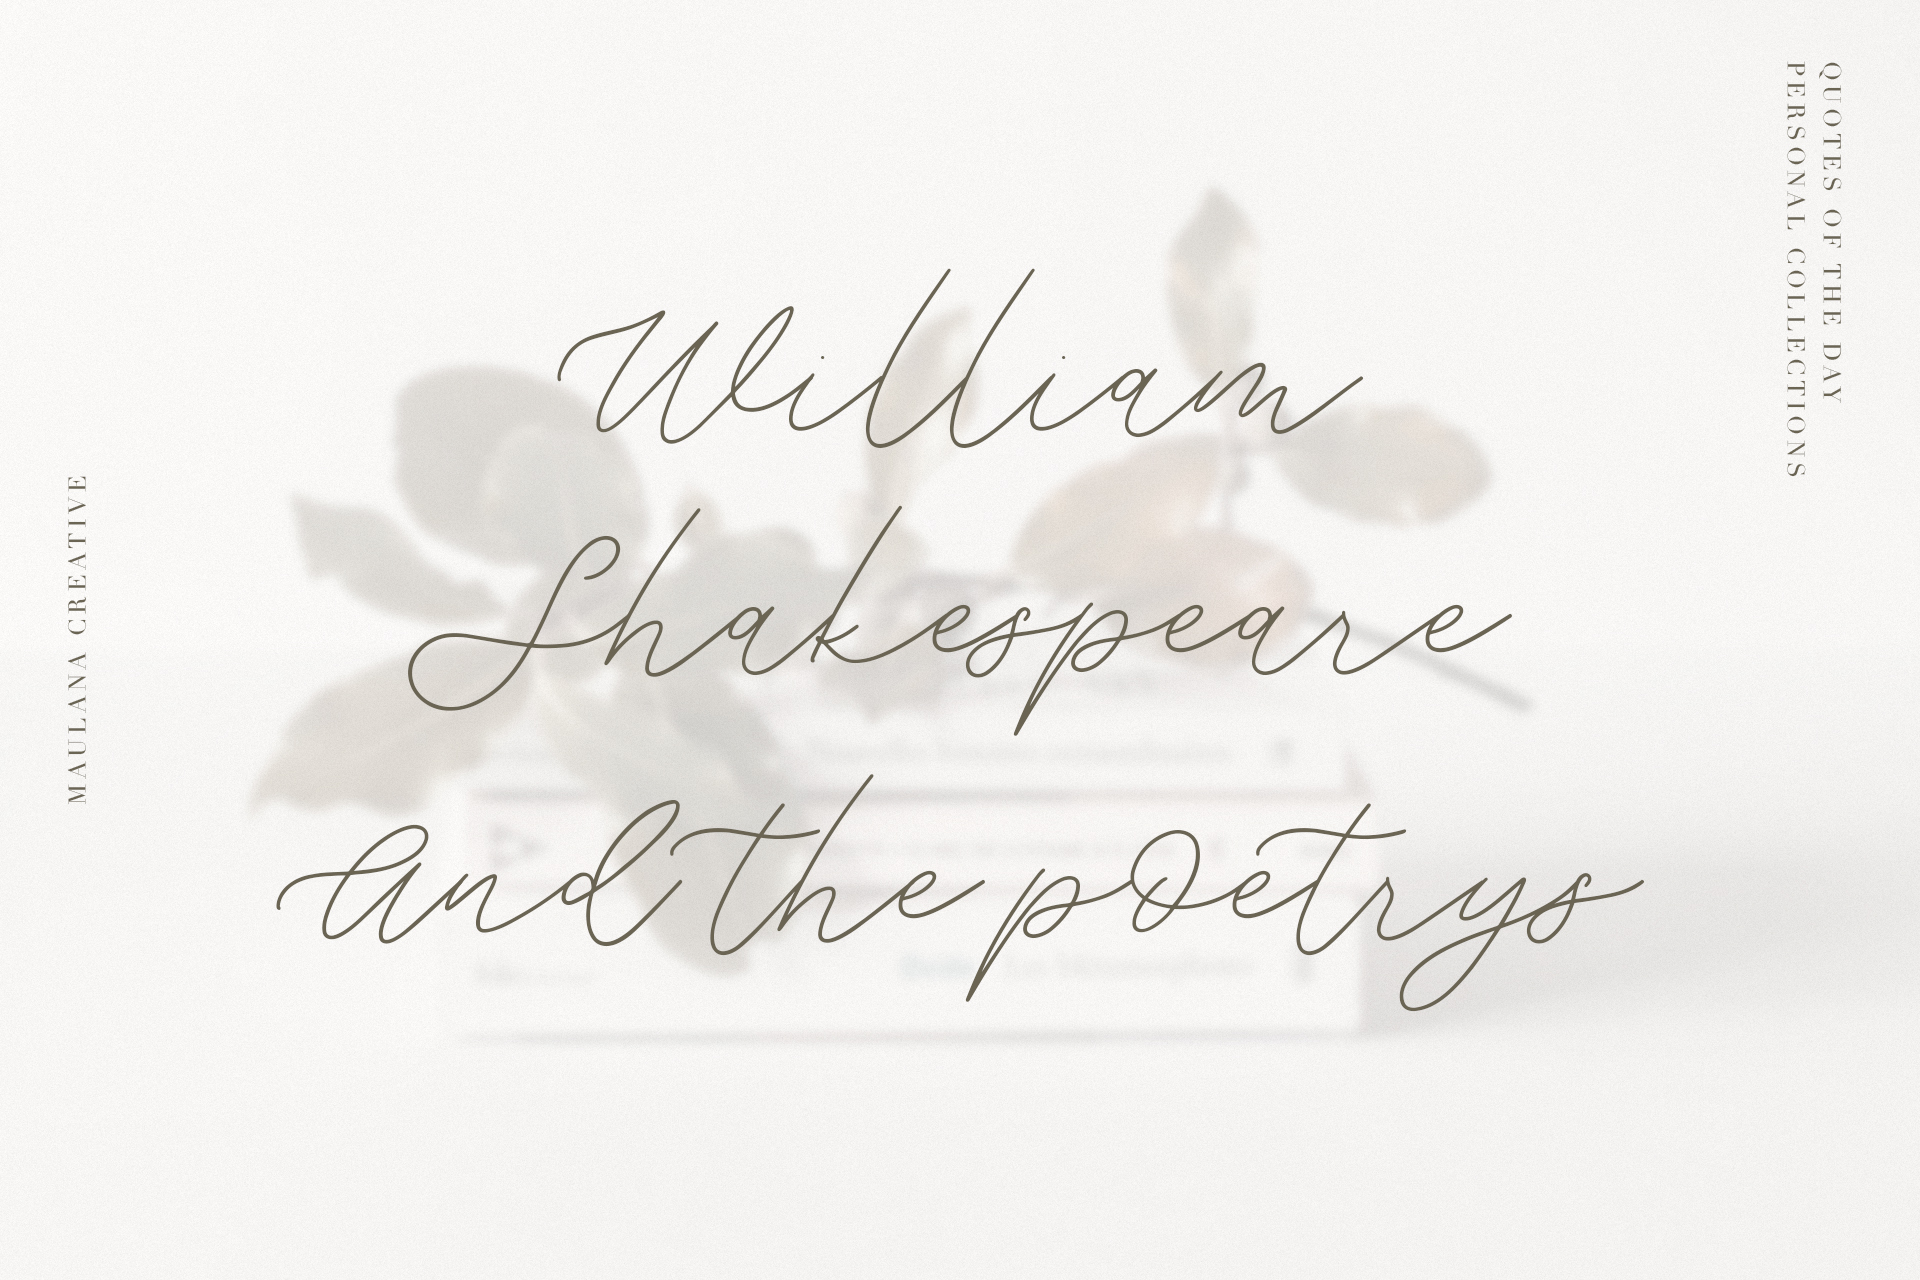 Weisston - Script Font example image 6